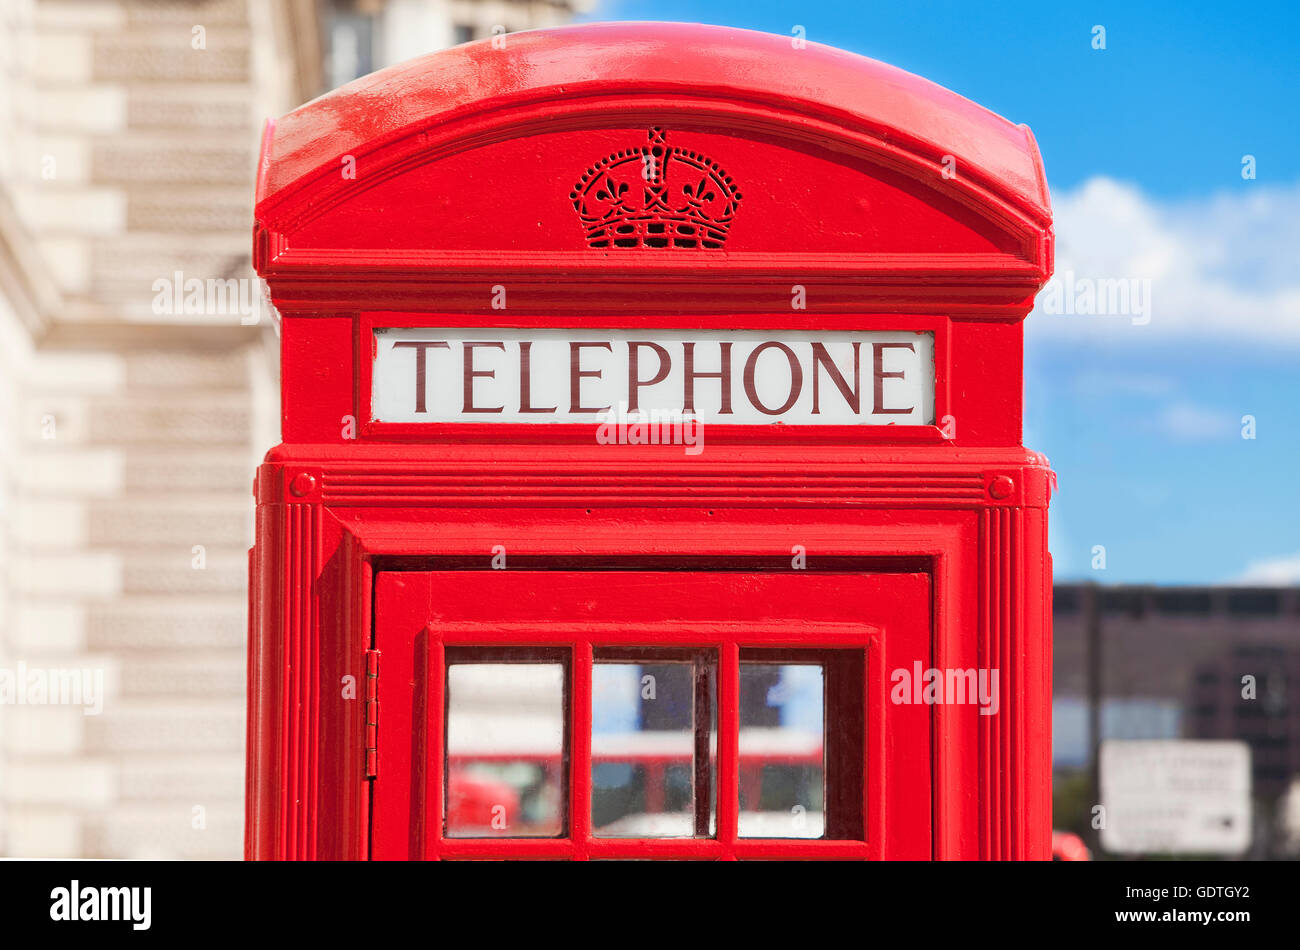 Red telephone box, London, U.K. - Stock Image